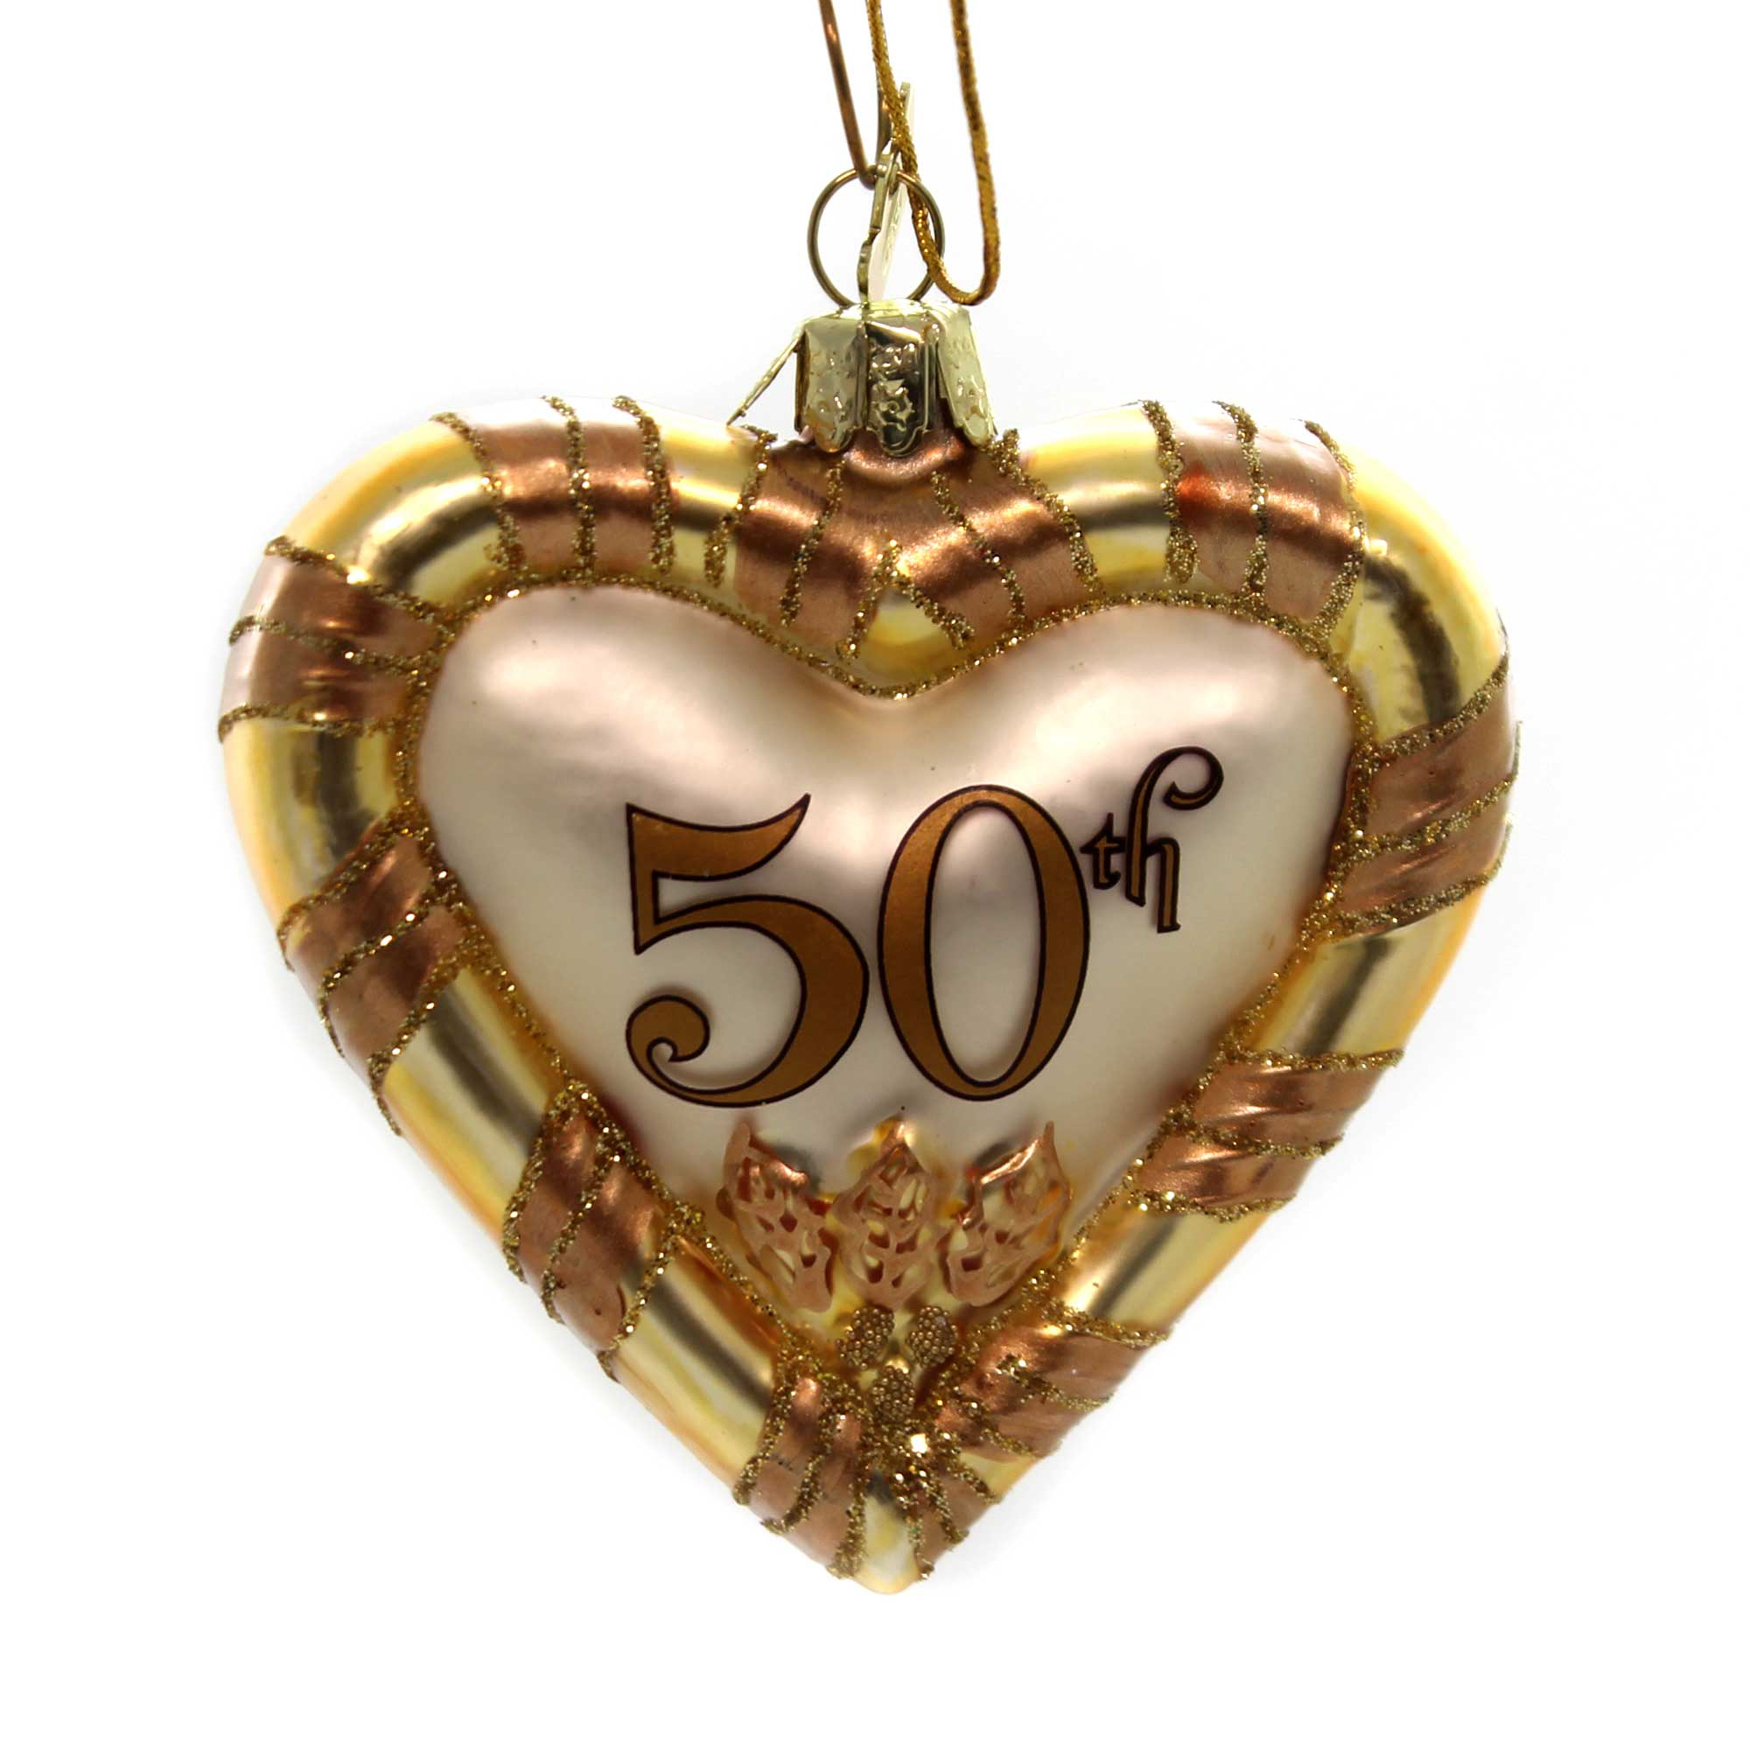 Noble Gems ANNIVERSARY HEART ORNAMENT Glass Marriage Love 50Th